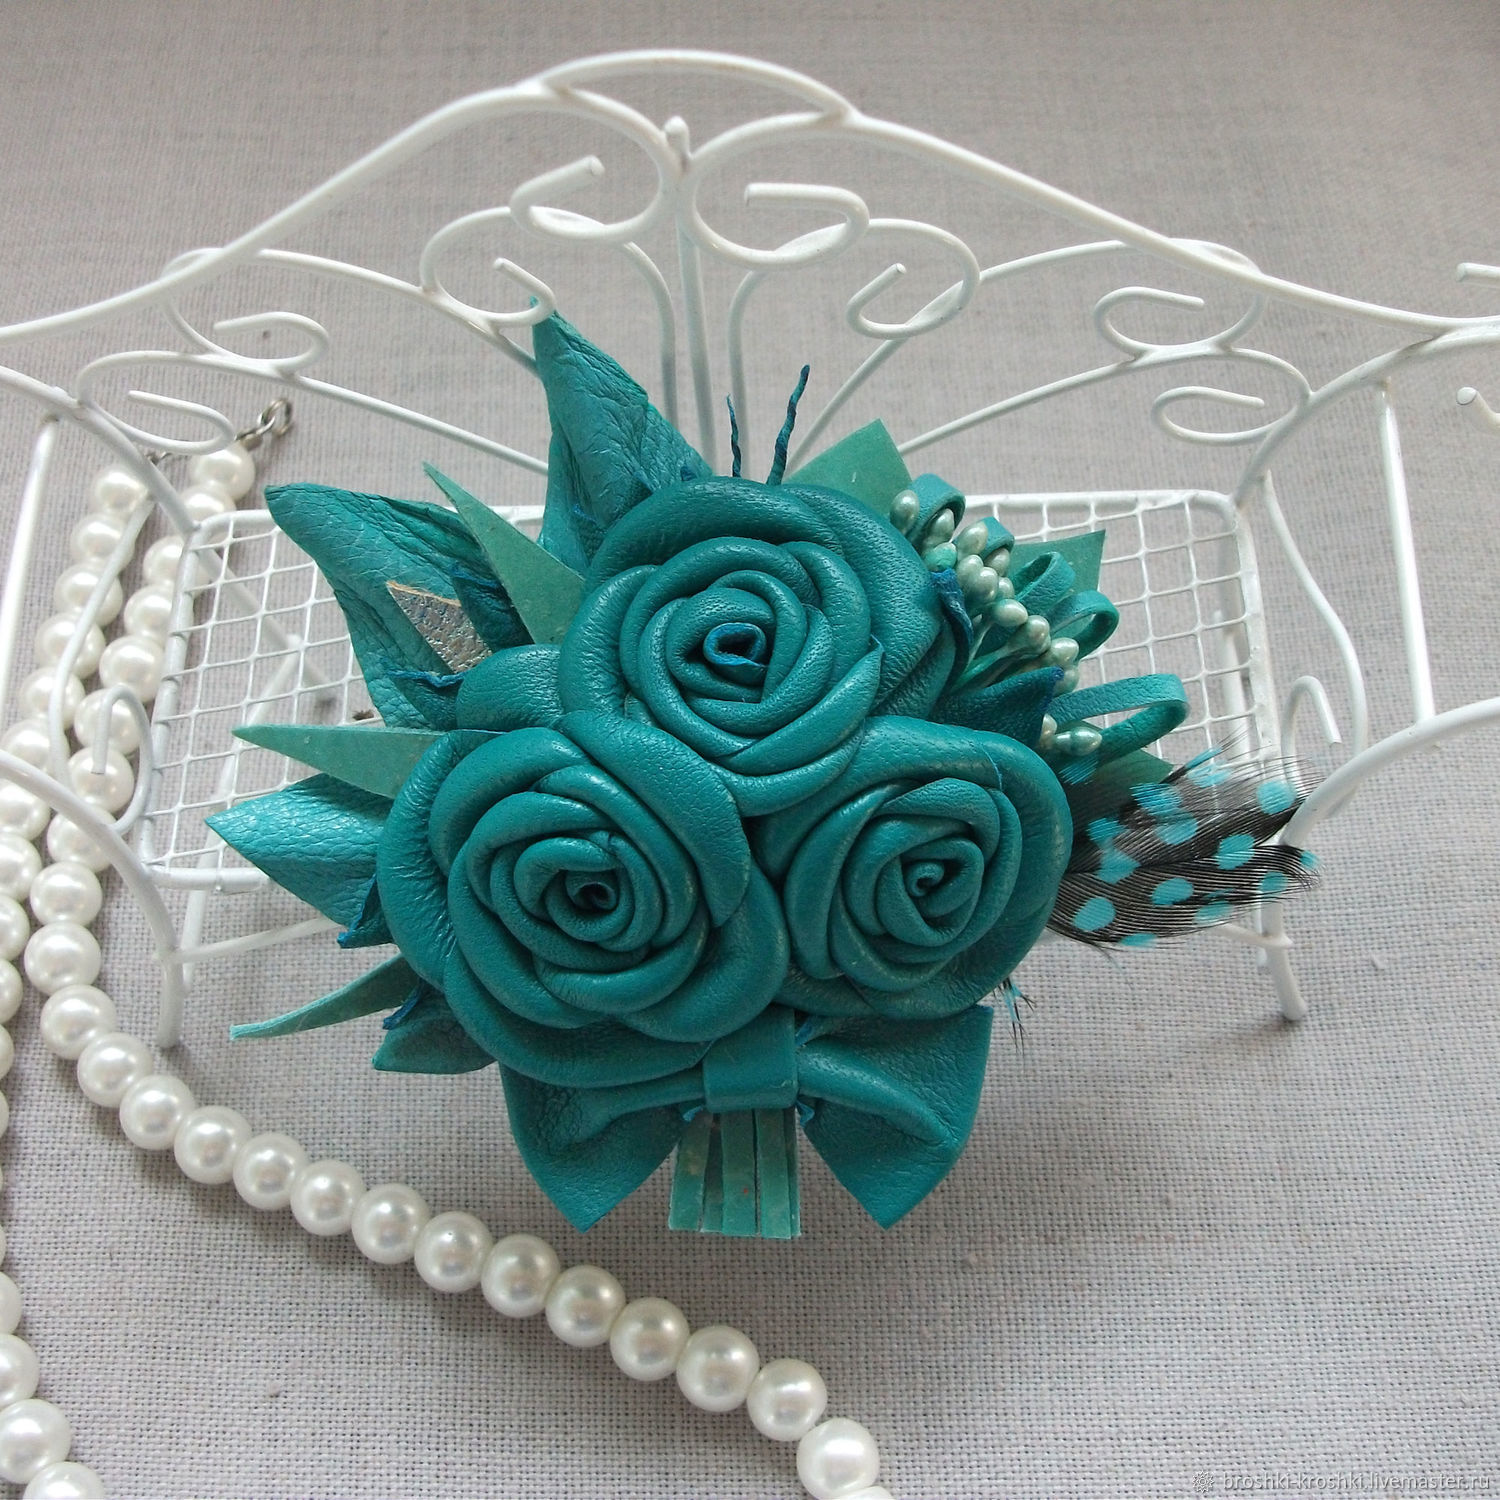 Small leather brooch with a bouquet of roses emerald-turquoise color, Brooches, Minsk,  Фото №1